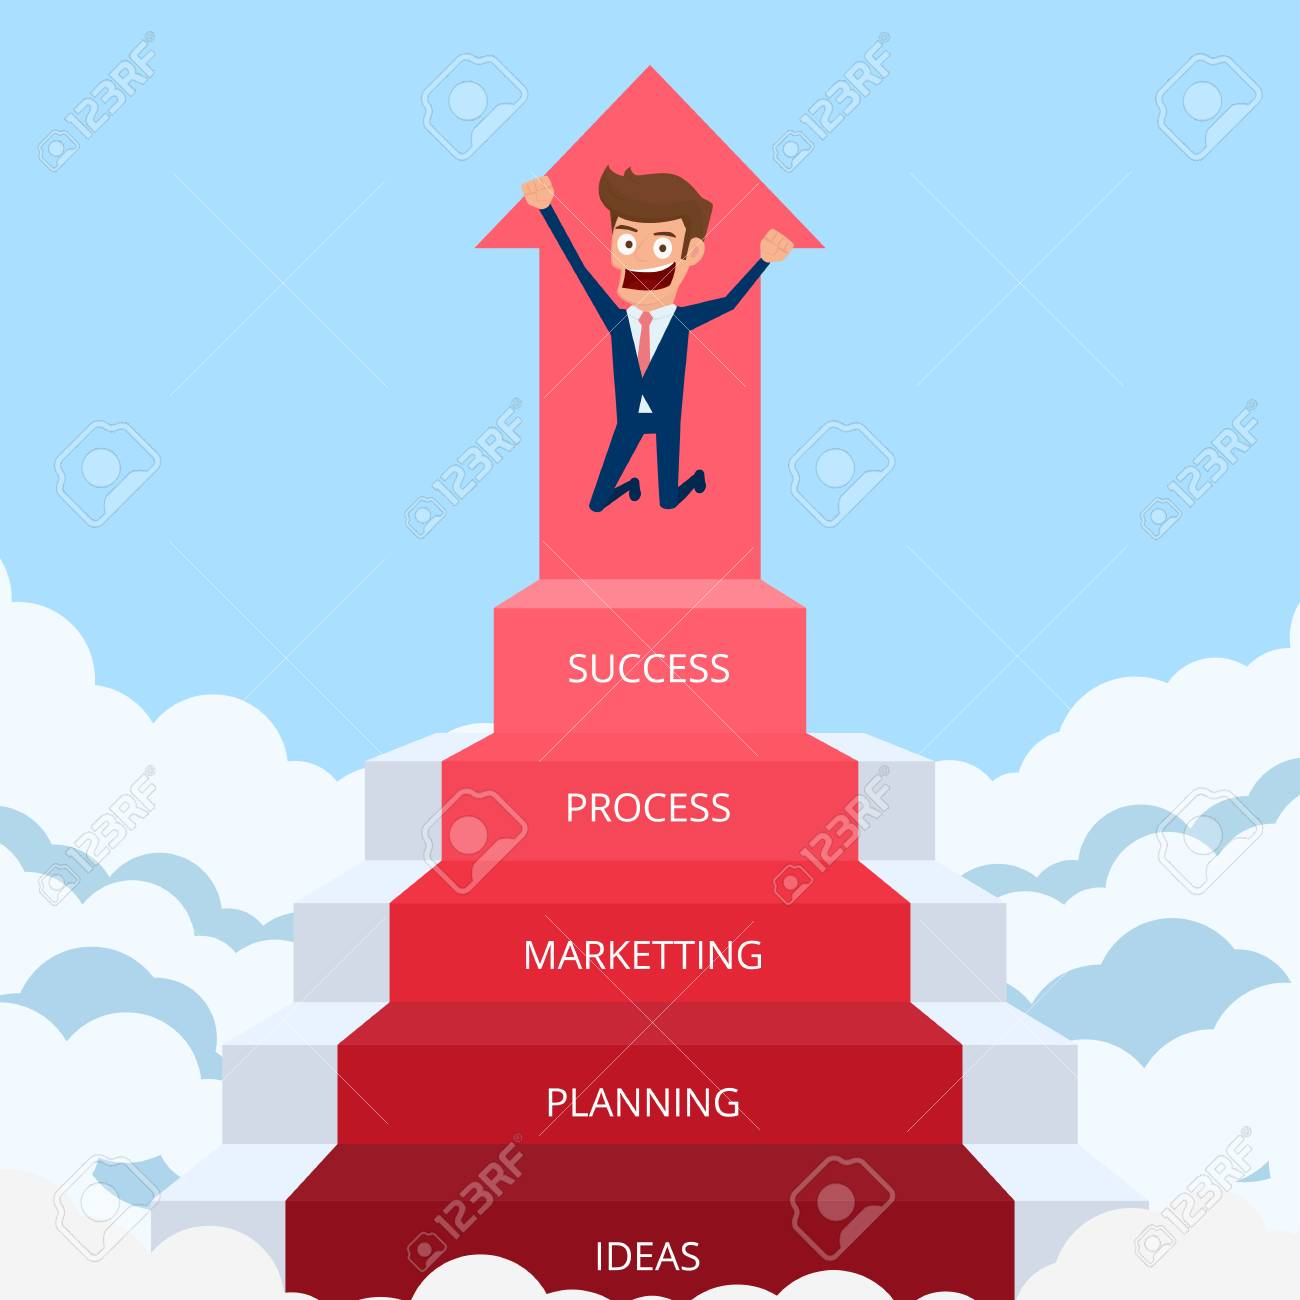 businessman going up to success staircase to success cartoon royalty free cliparts vectors and stock illustration image 85066692 123rf com